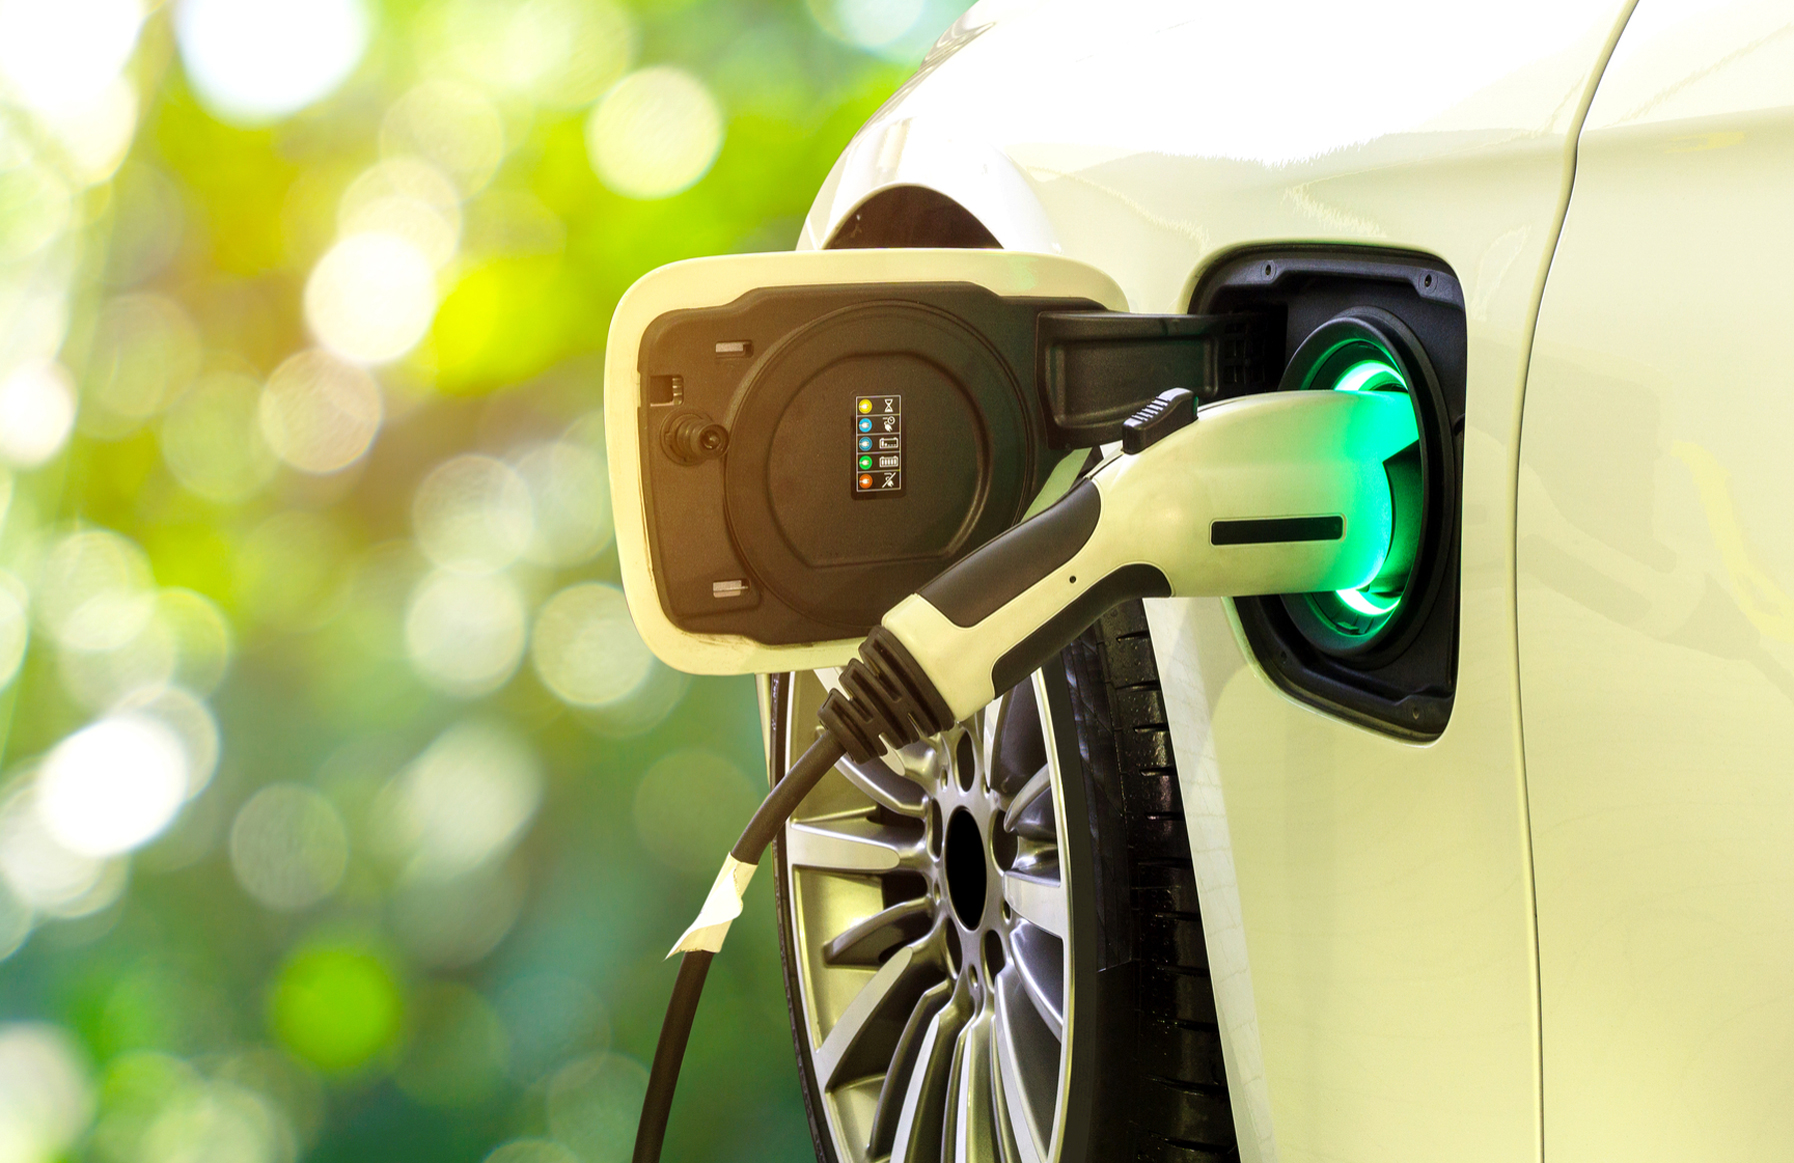 Prism - Cambridge MA - Electric car charging available